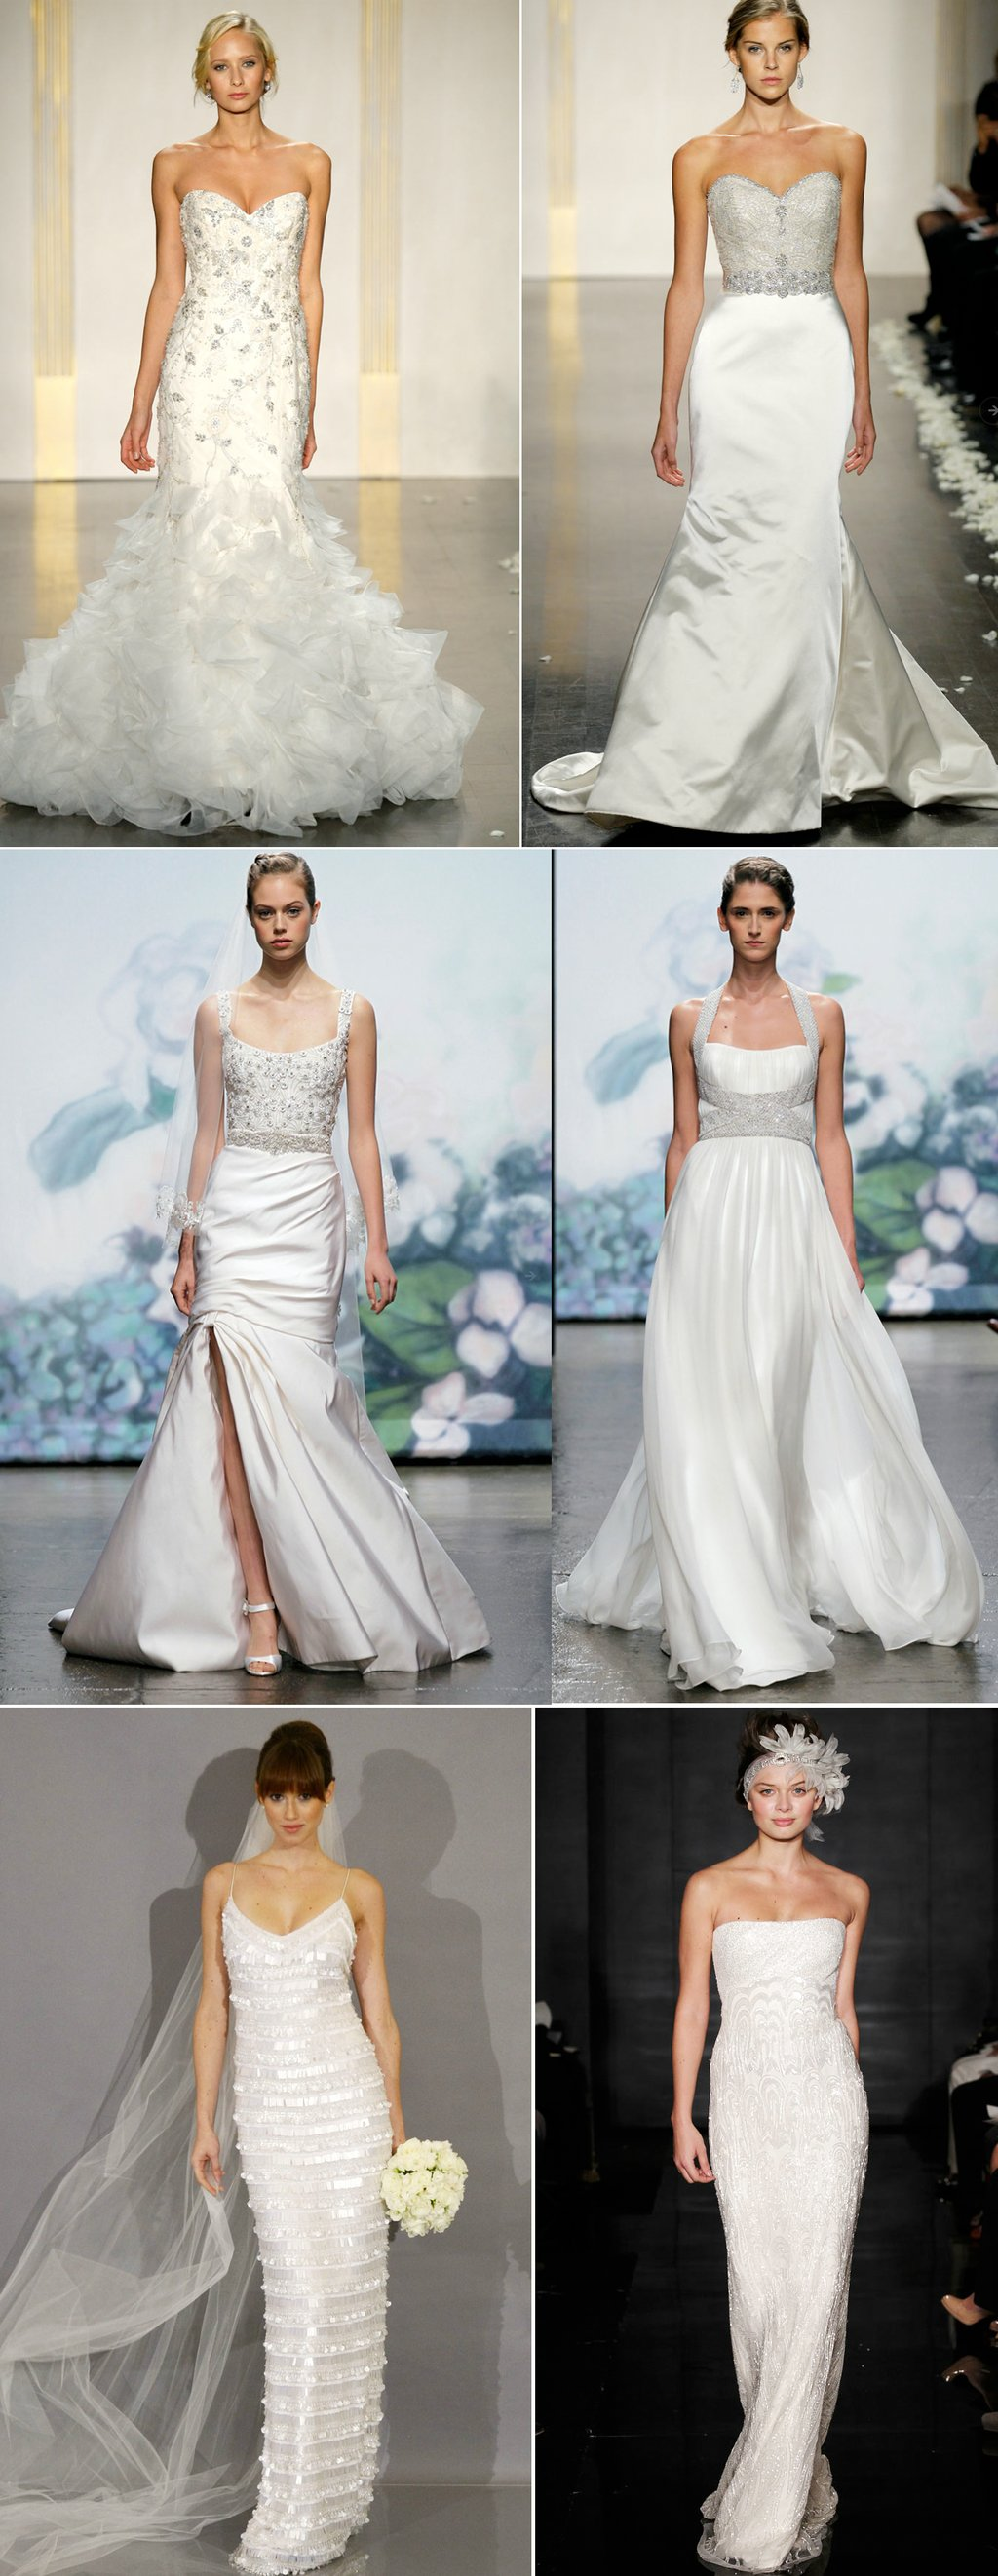 2012 wedding dresses beaded bridal gown reem acra lazaro